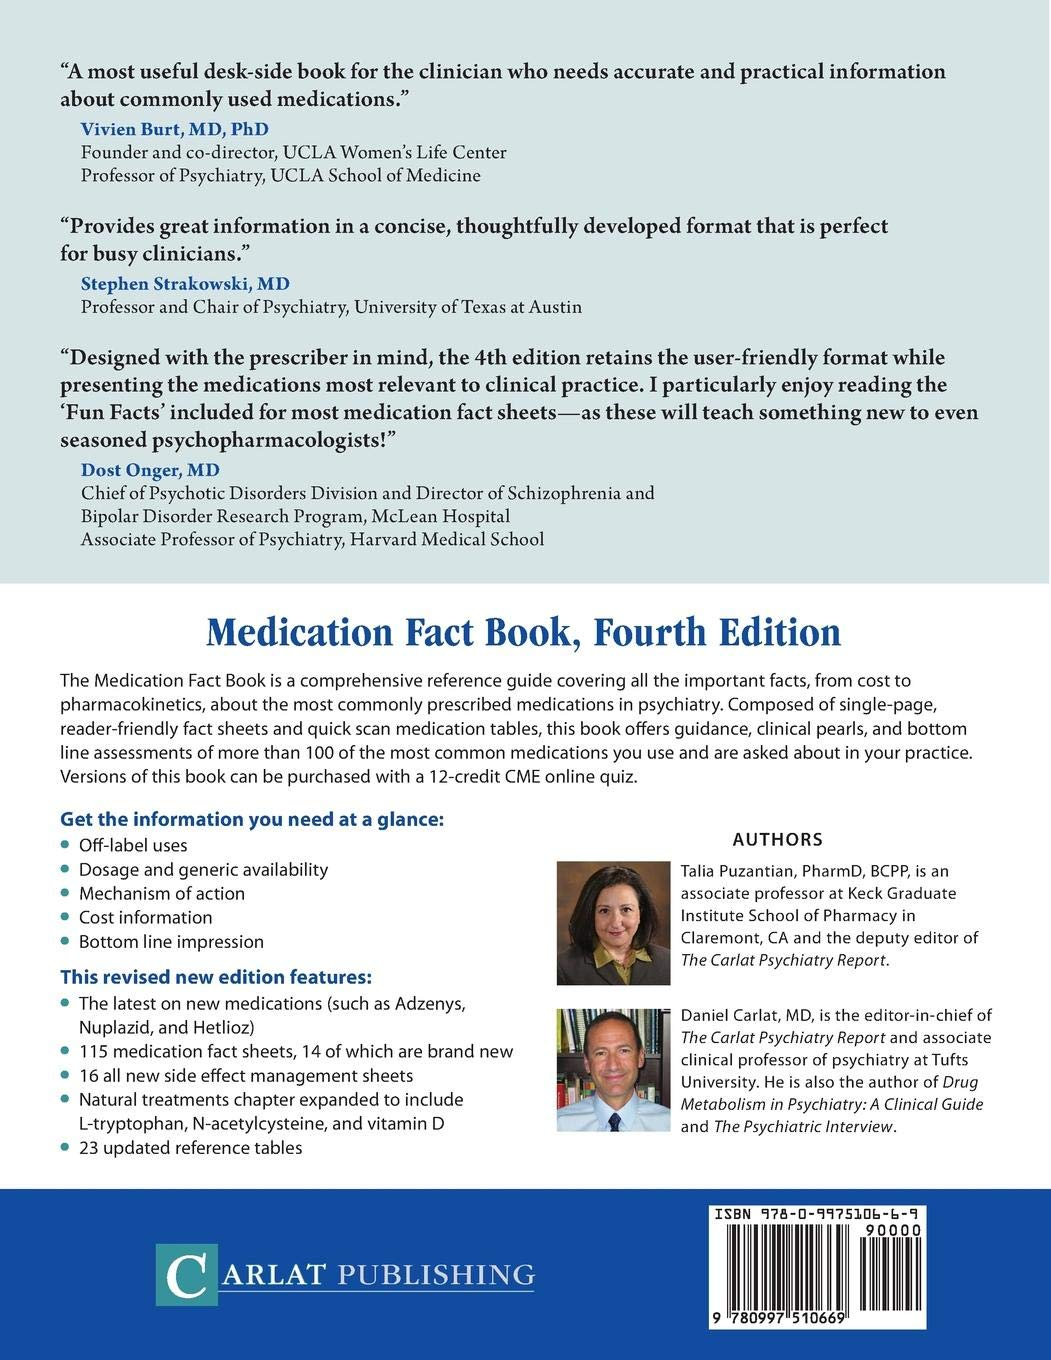 Buy The Medication Fact Book for Psychiatric Practice Book Online at